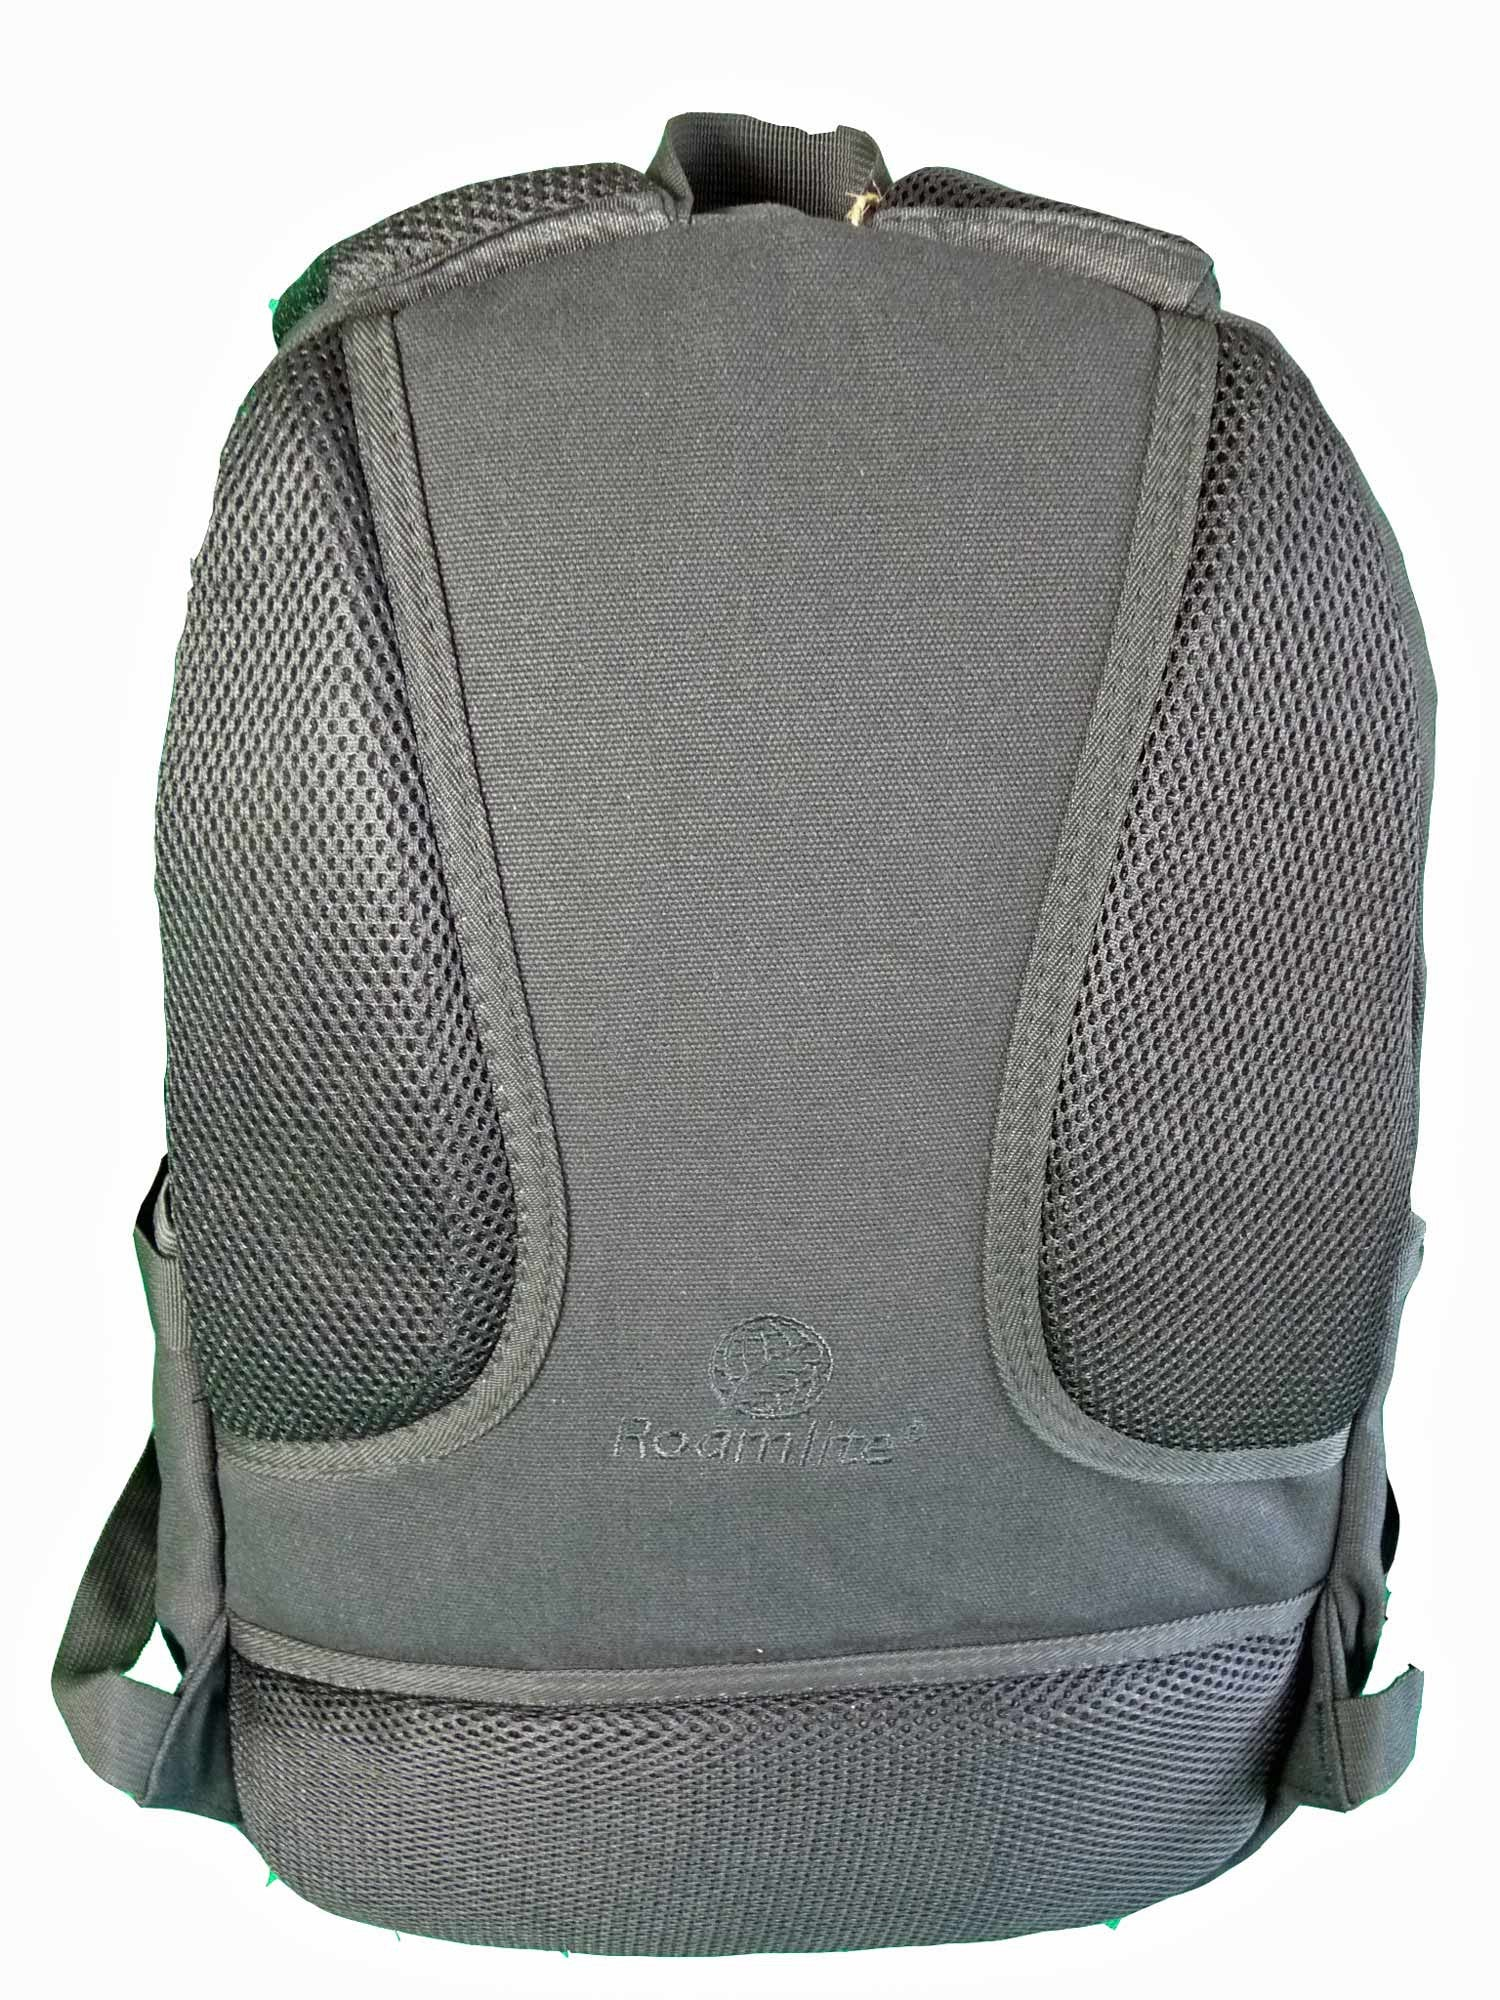 MacBook Air Backpack Rucksack Bag RL25K rear view 2